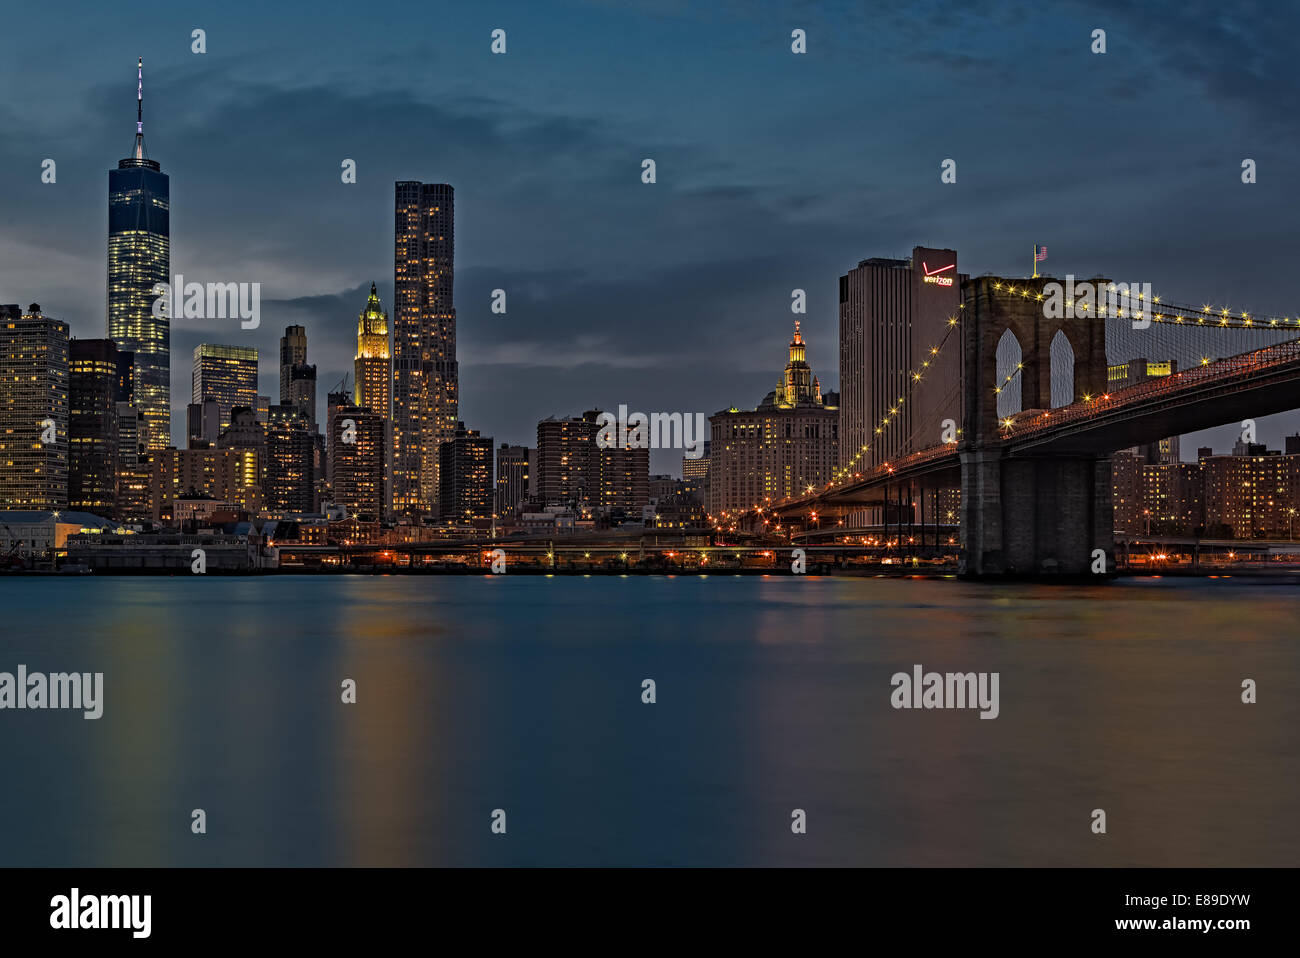 A view to the midtown Manhattan, New York City skyline during twilight. - Stock Image